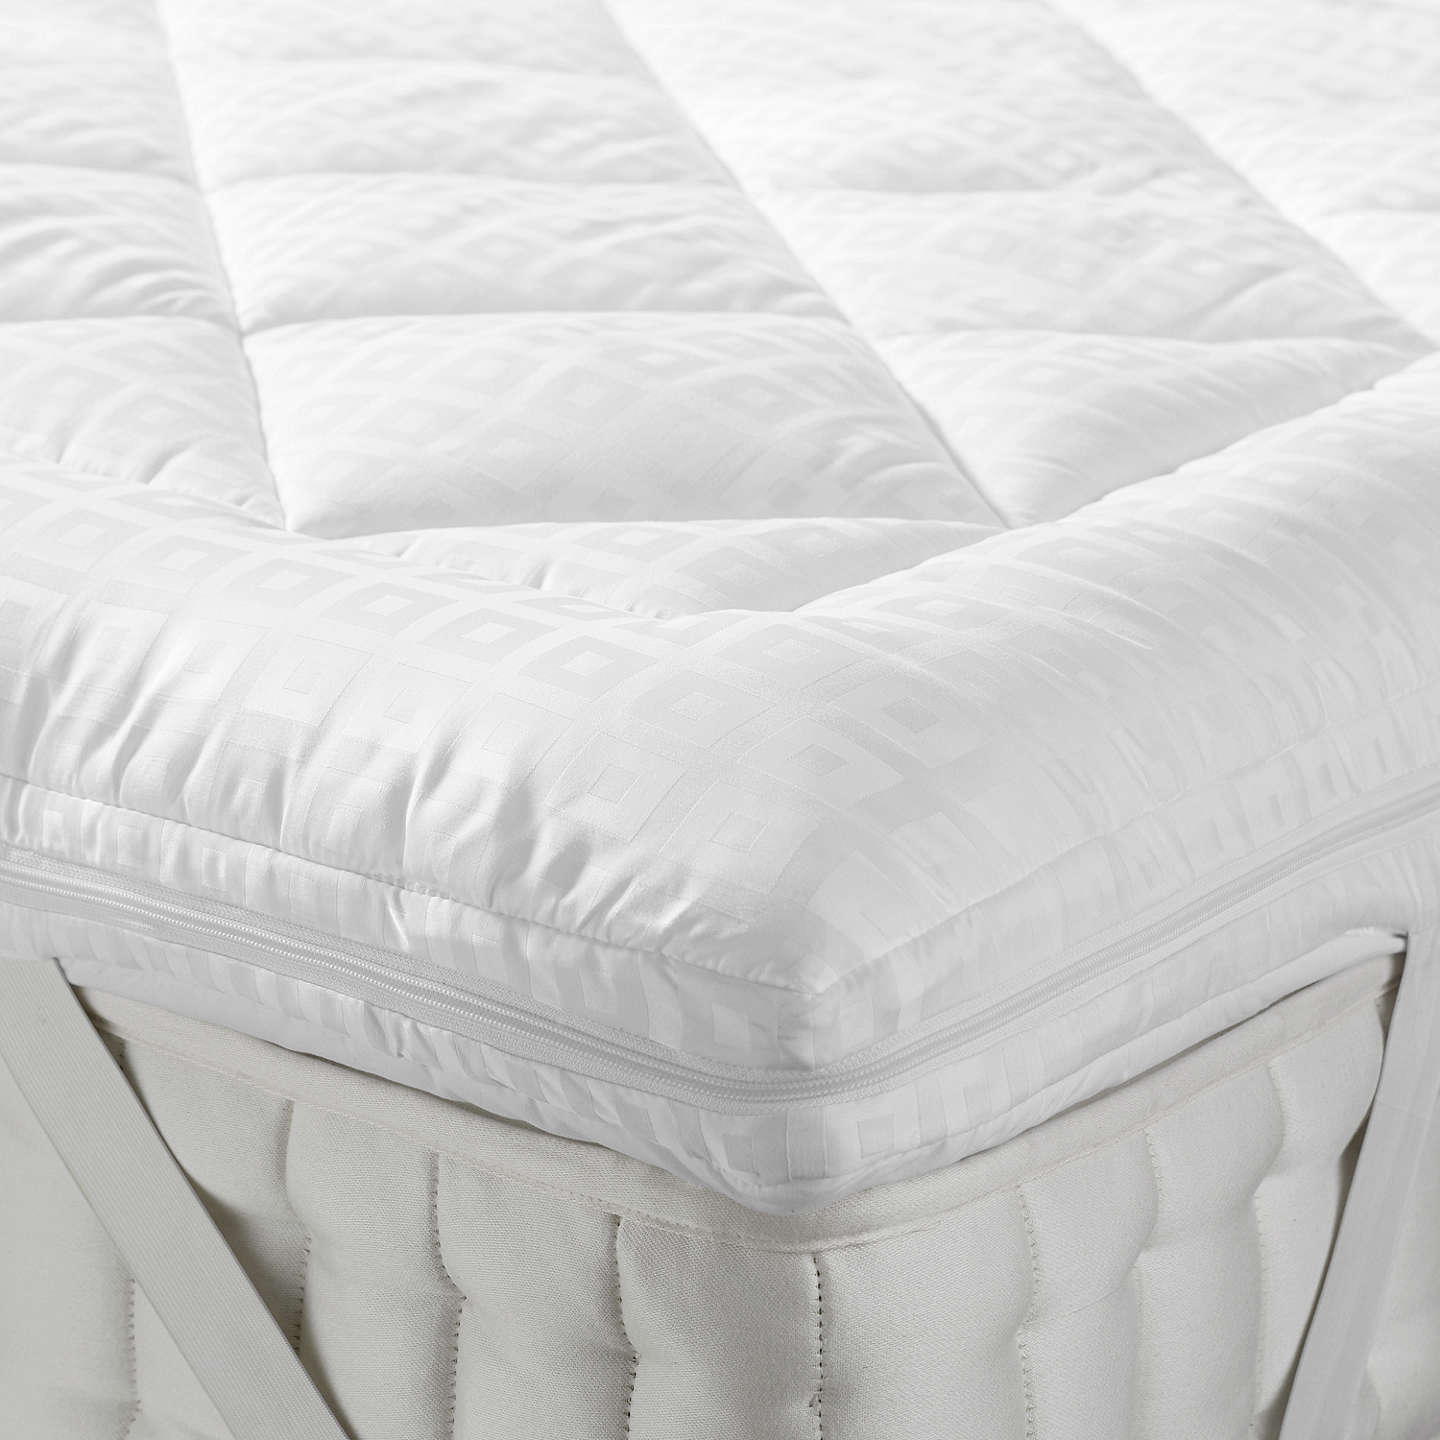 mattress topper. BuyJohn Lewis Synthetic Soft Touch Washable Mattress Topper, Double Online At Johnlewis.com Topper R